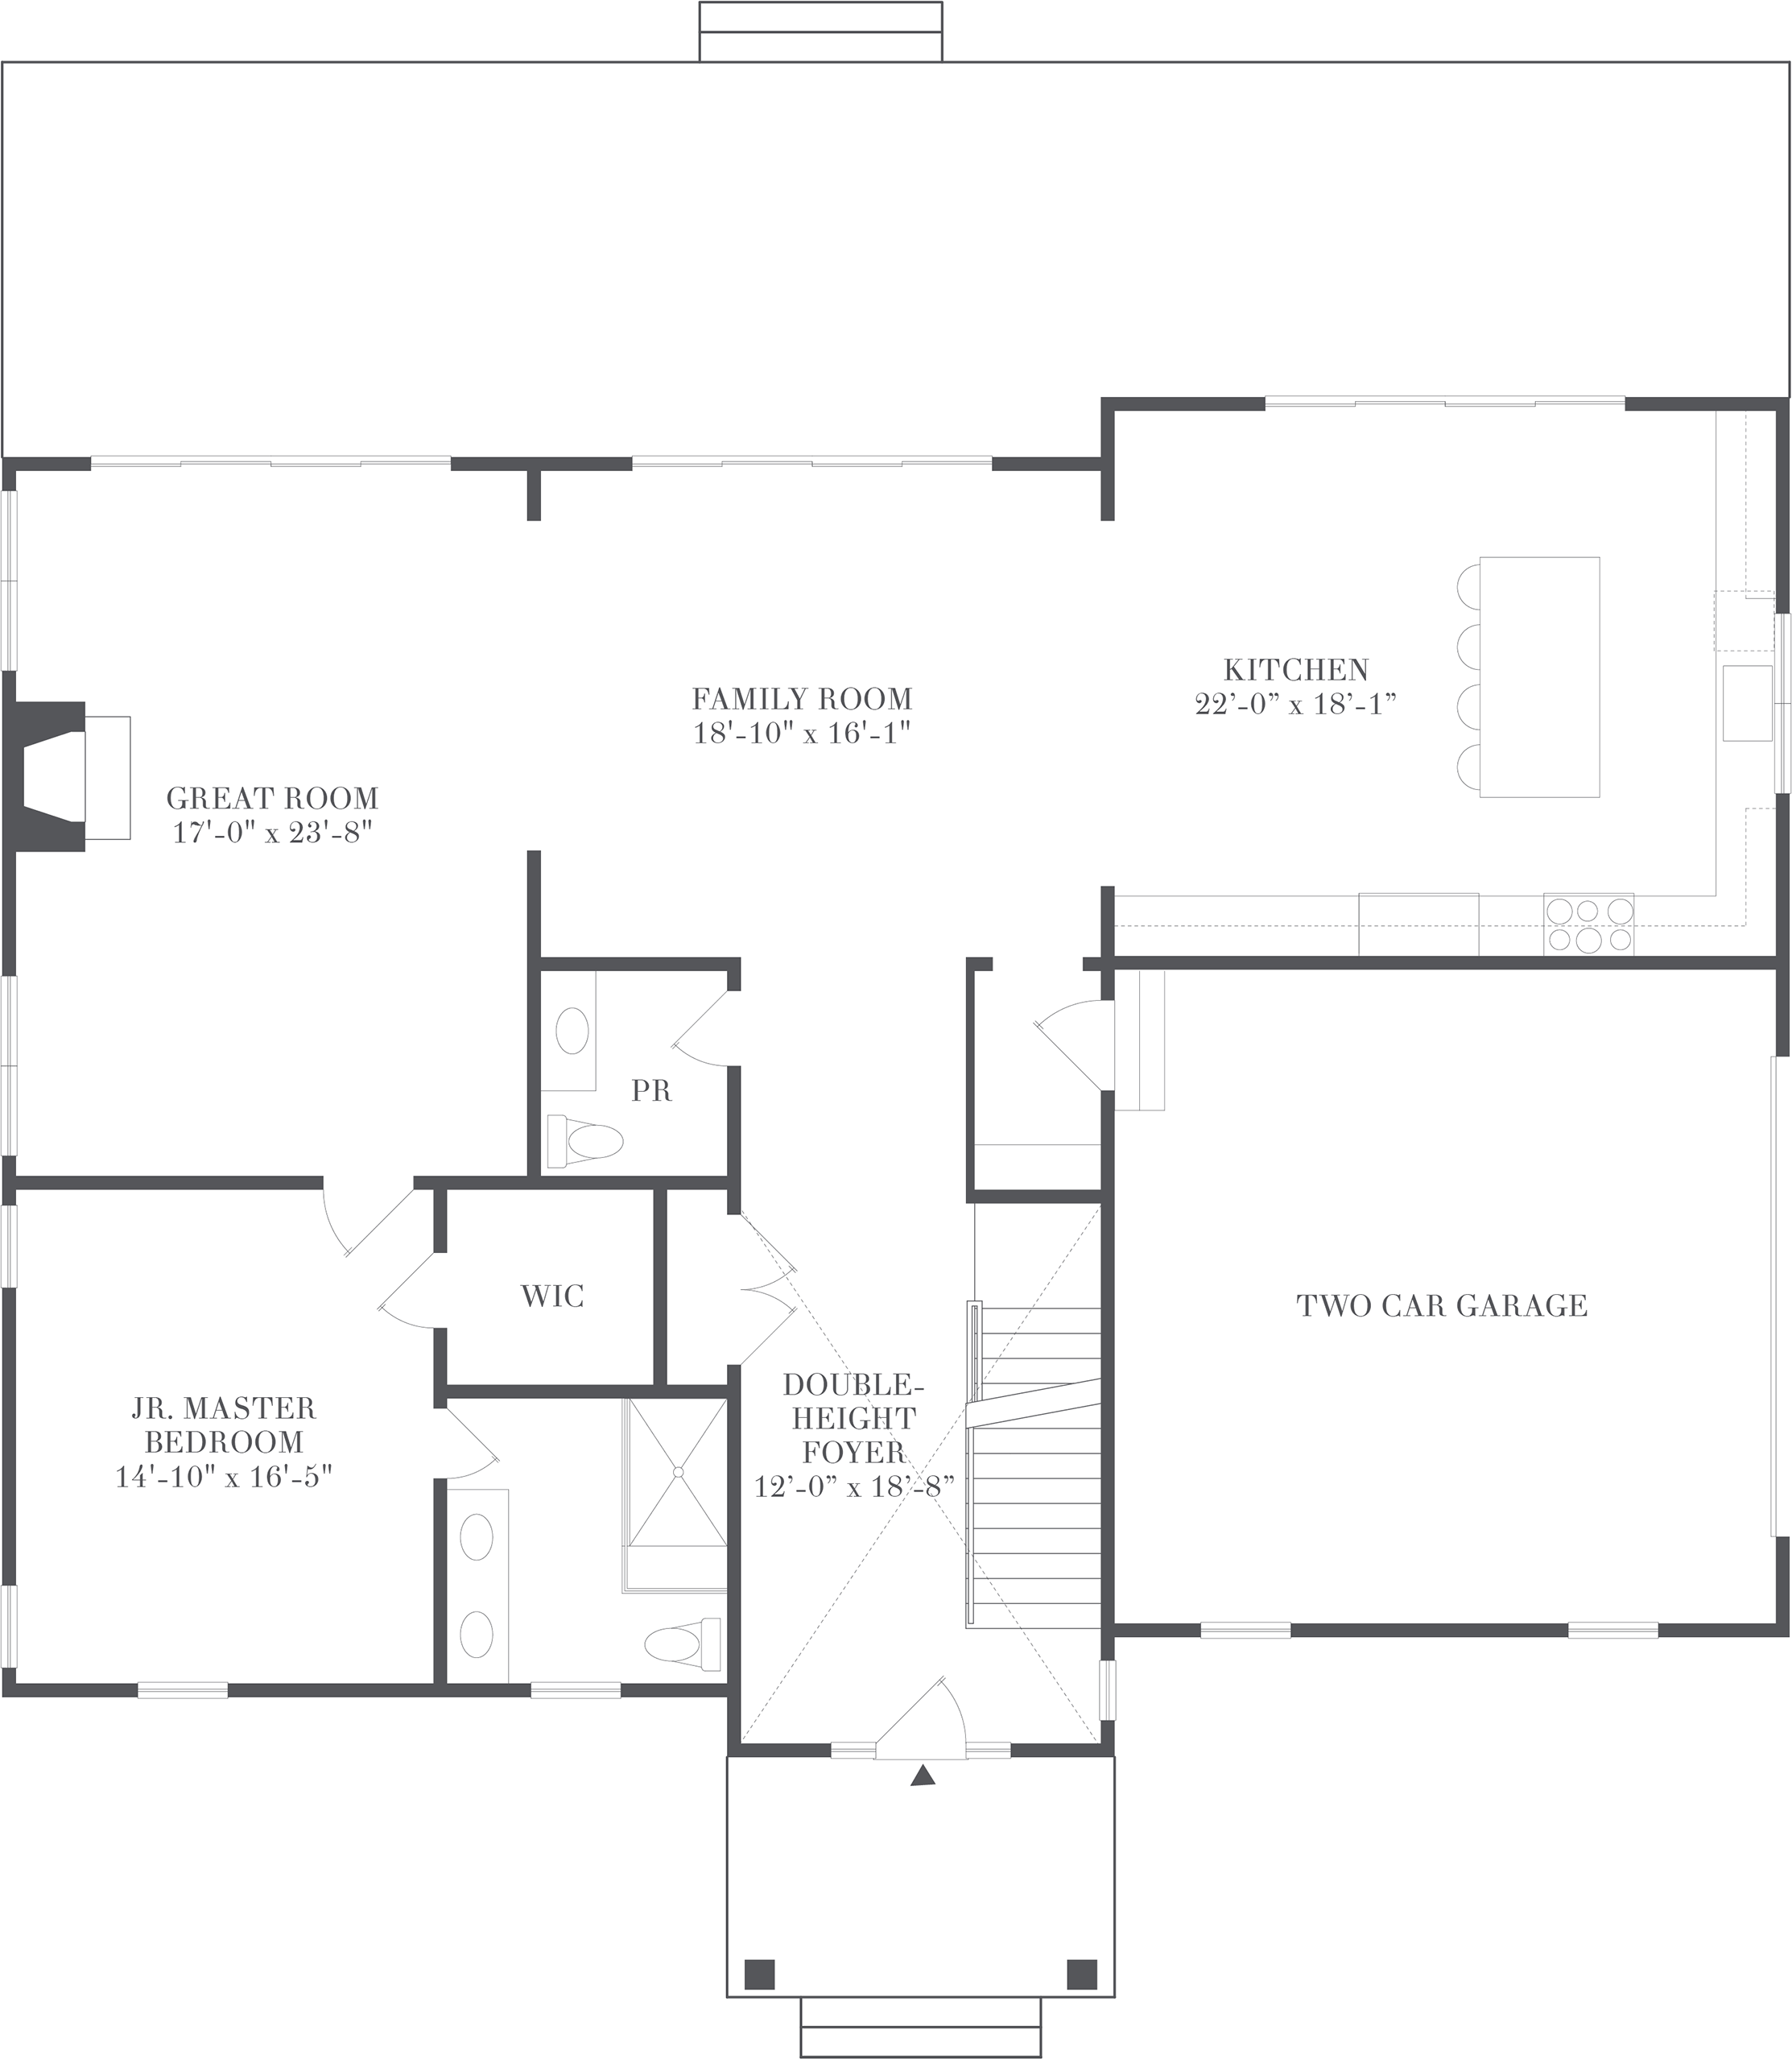 Cameron - Floorplan - Living and Entertaining Level